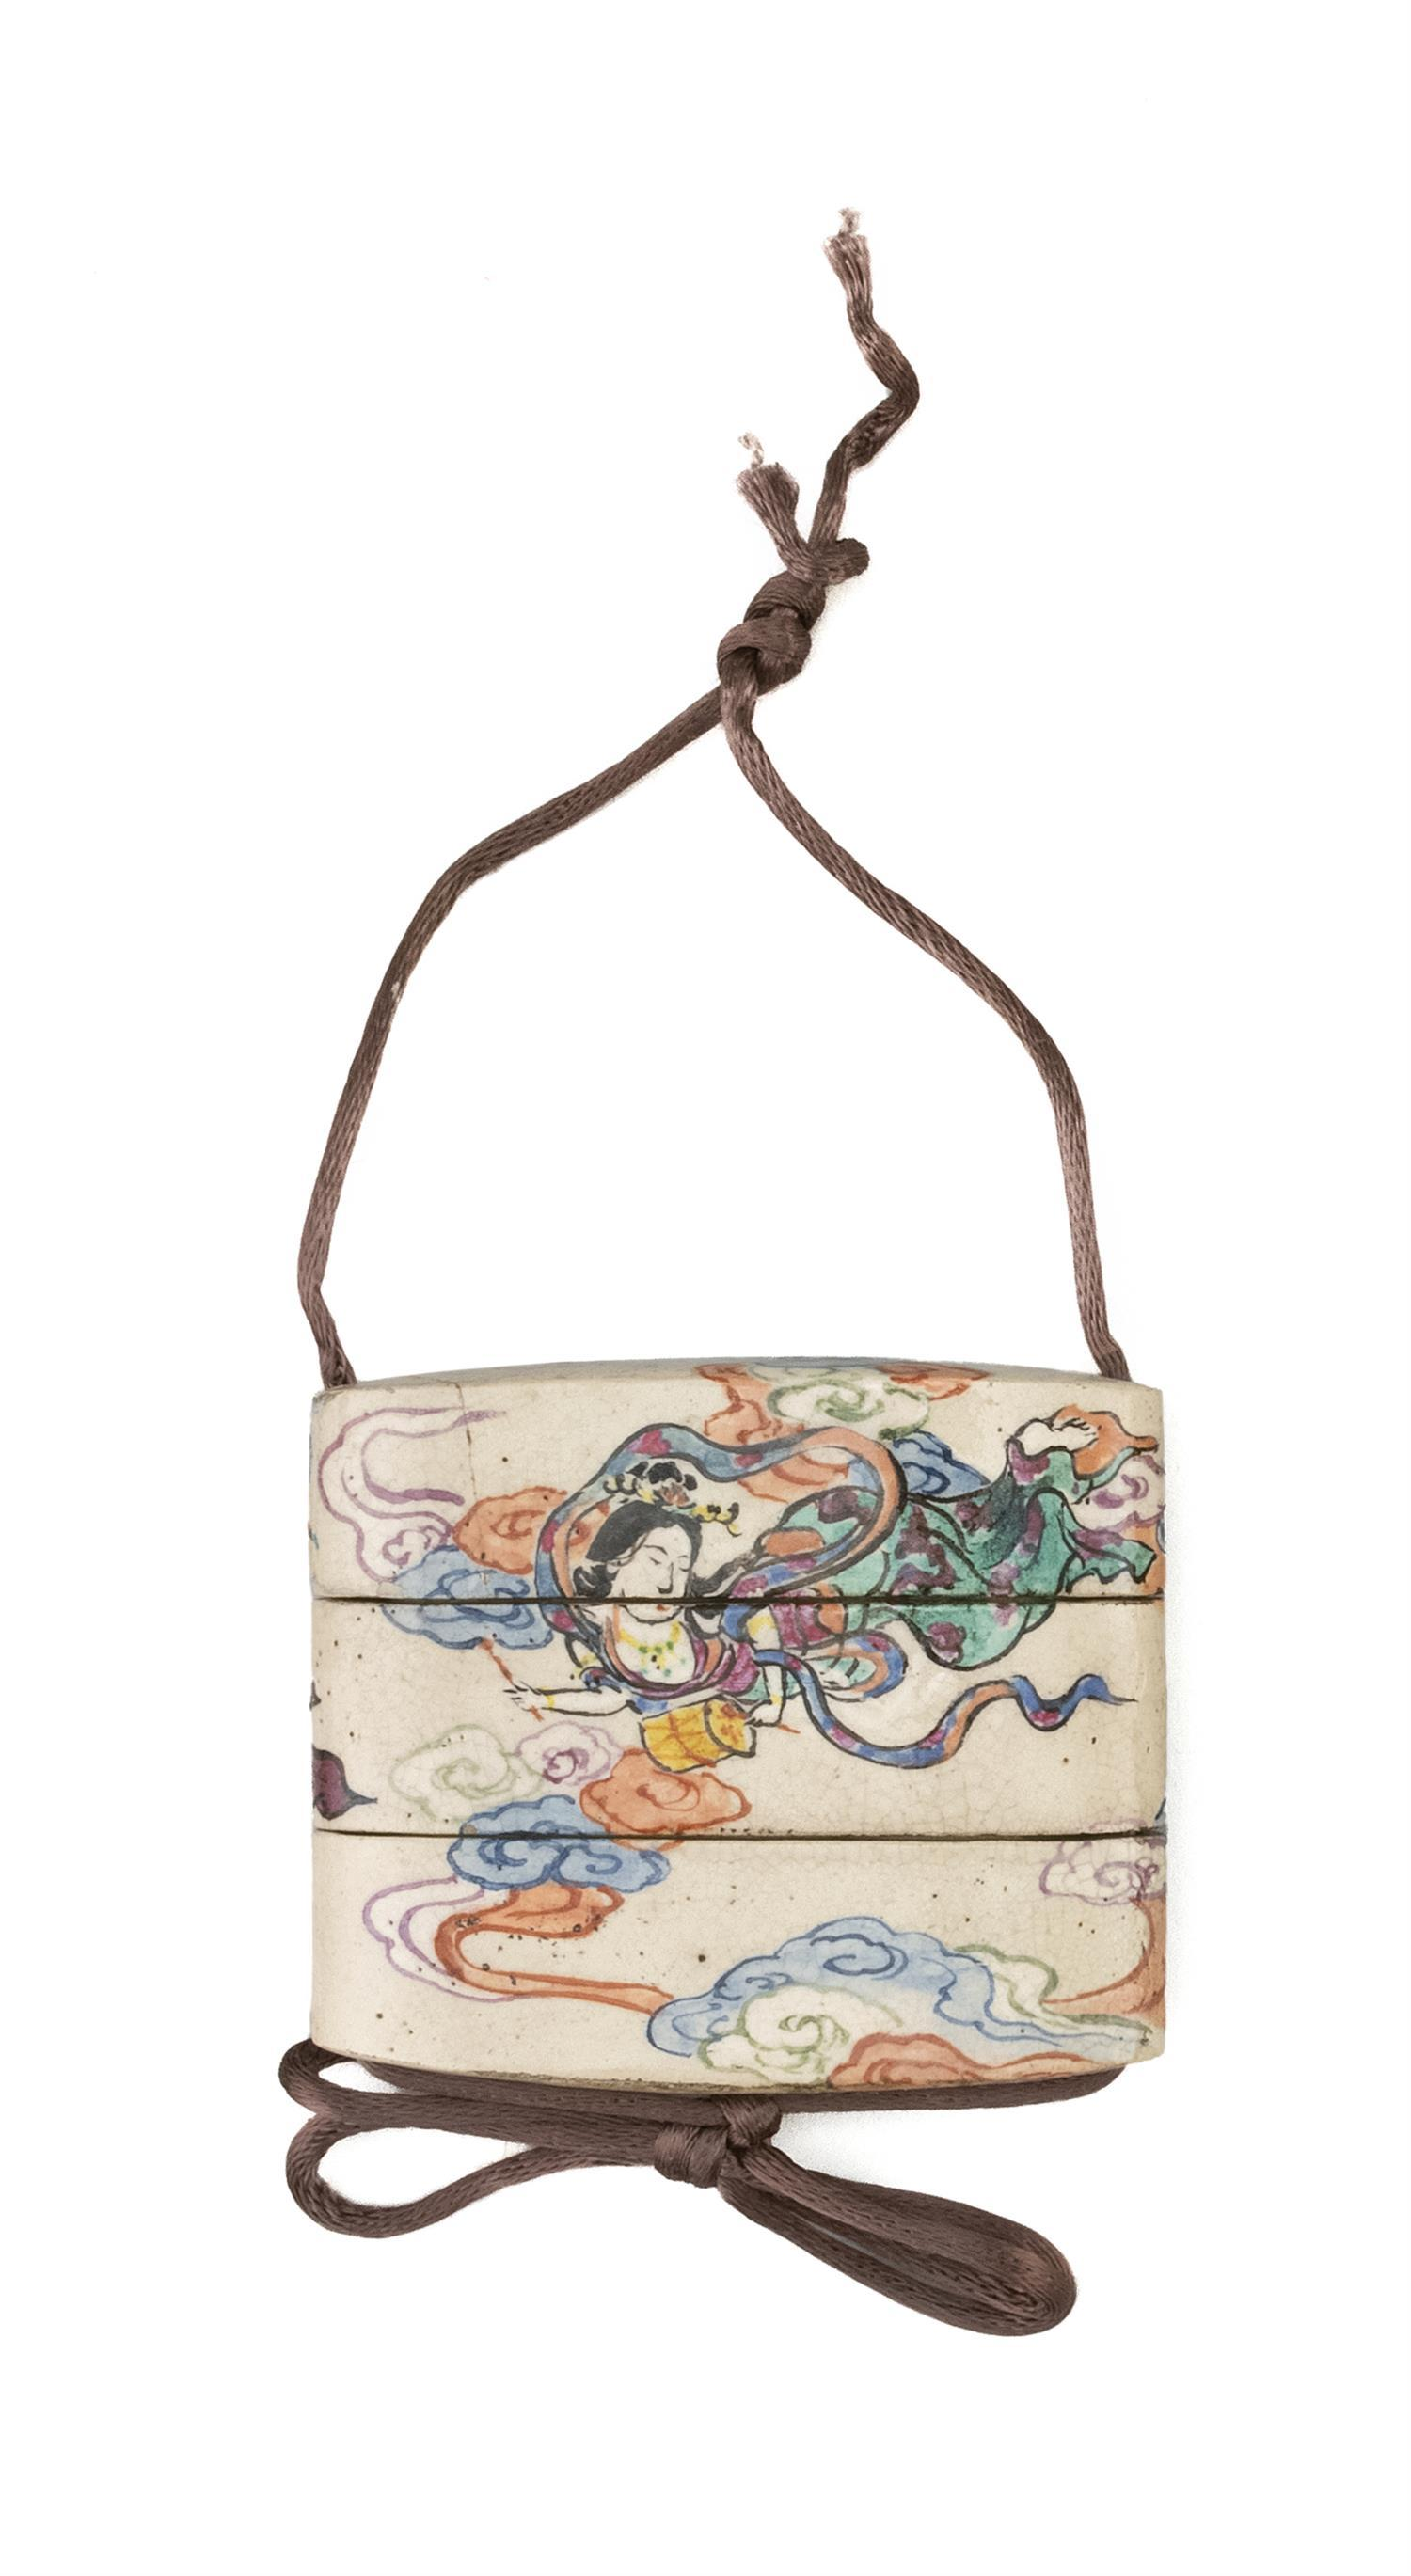 """JAPANESE CERAMIC TWO-CASE INRO Signed Kenzan. Decorated with a polychrome scene of an apsara in clouds playing a shou. Length 2.25""""."""